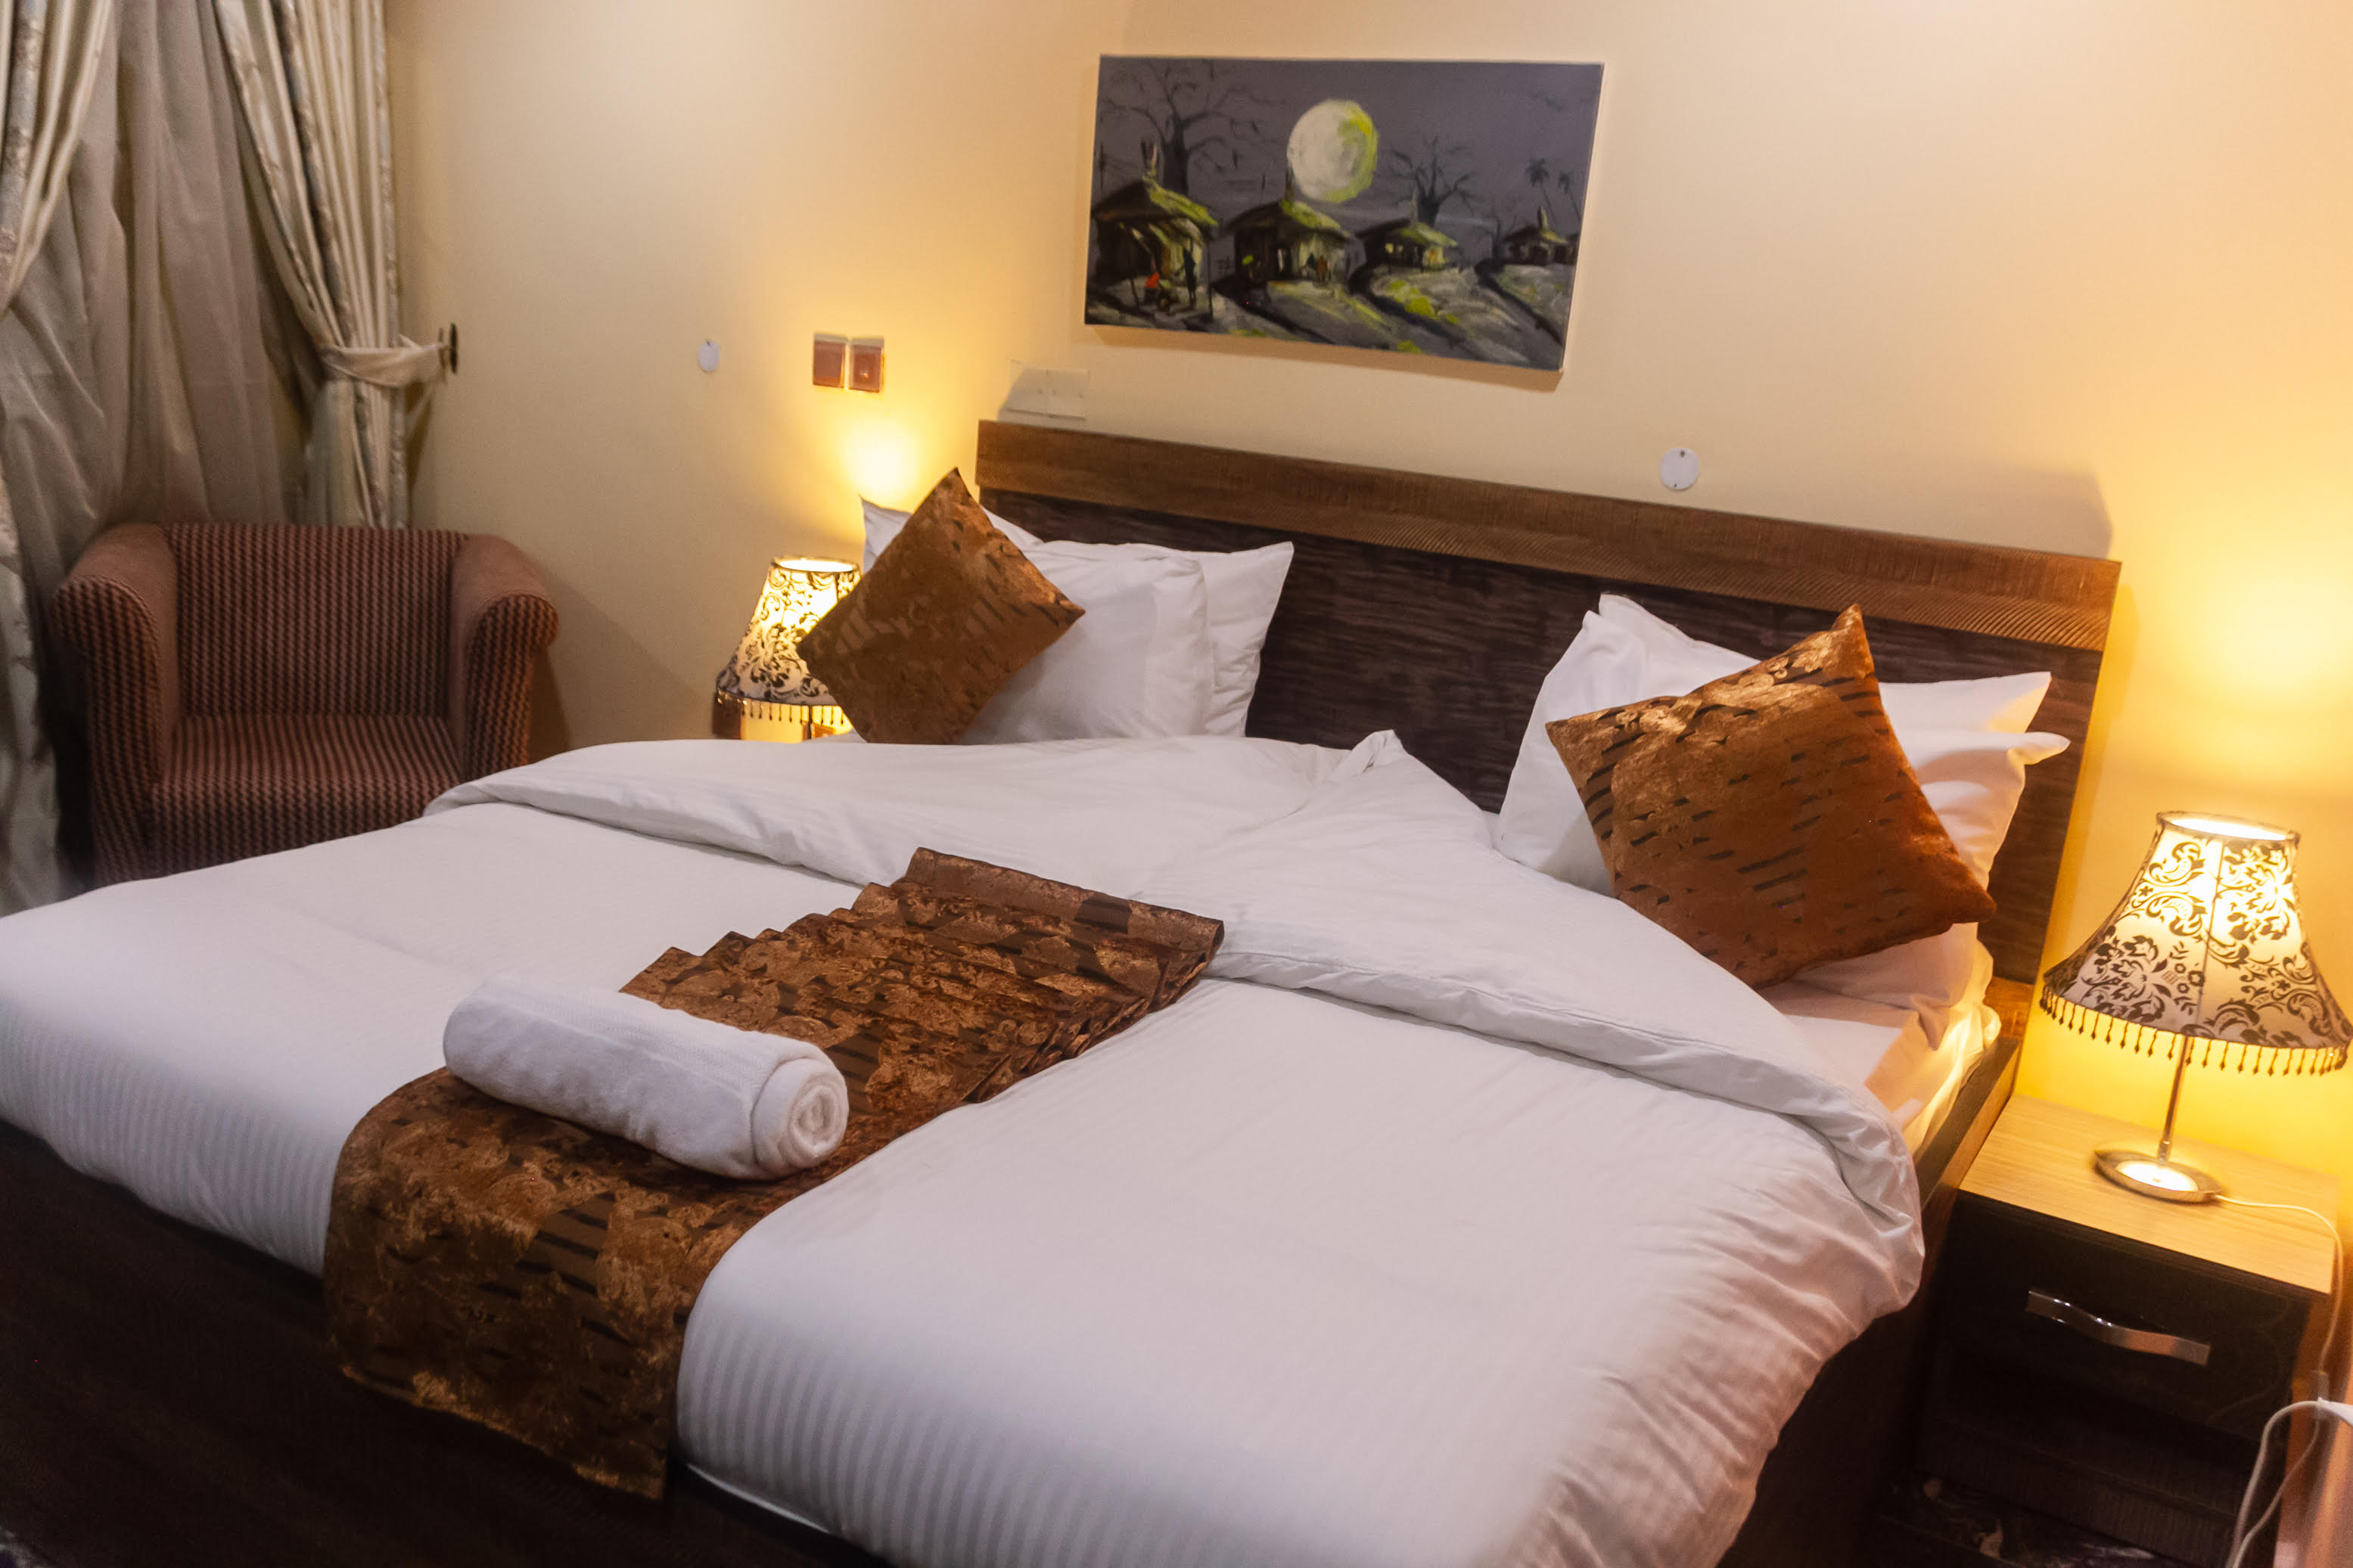 Best Hotels In Lagos, Nigeria- Noxiae Hotel Review: First Visit and Review Of House 9 Royale Hotel